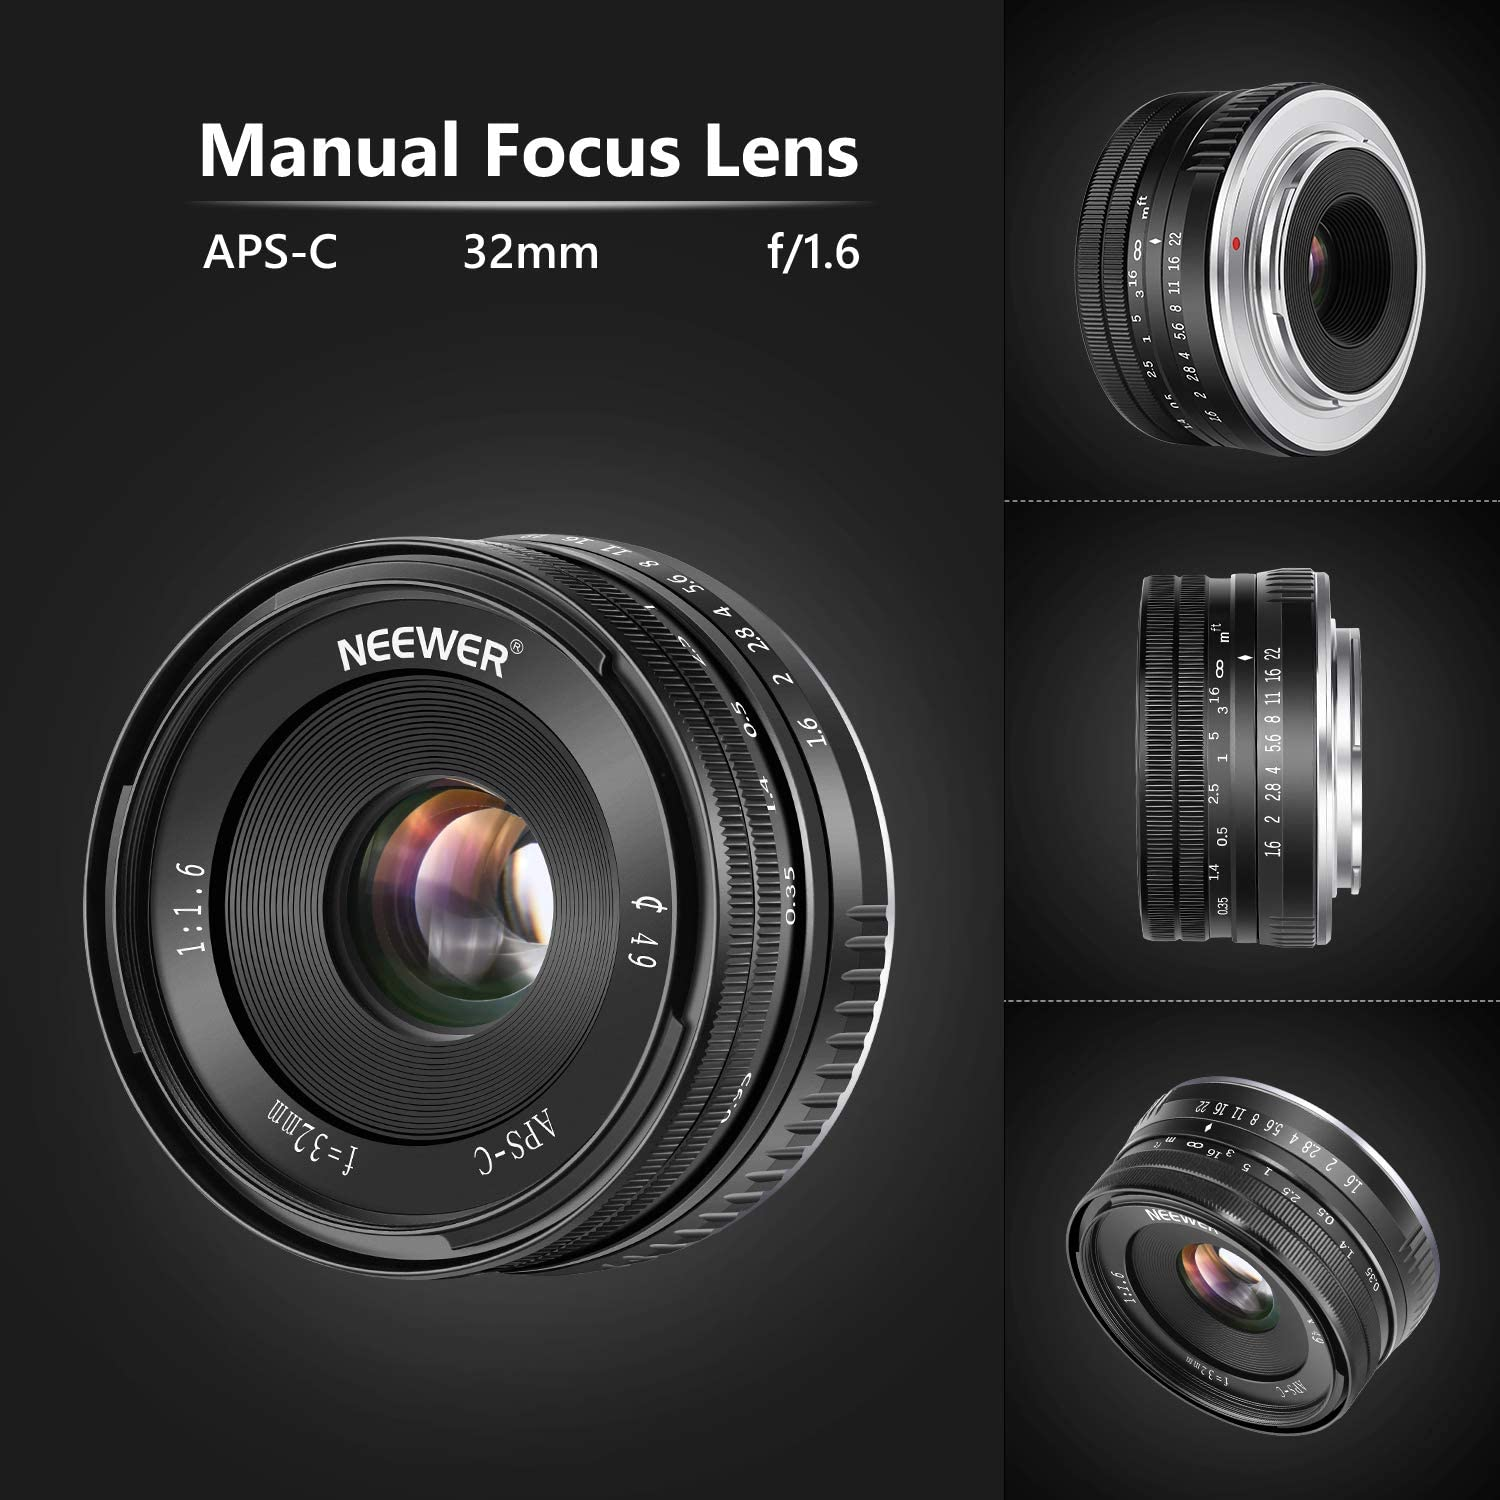 Neewer 32mm F//1.6 Manual Focus Prime Fixed Lens Large Aperture Wide Angle Lens Compatible with Fujifilm APS-C Frame Mirrorless Camera X-T1 X-T2 X-Pro1 X-Pro2 X-M1 X-T10 X-A1 X-A2 X-A3 X-E1 X-E2 X-E3